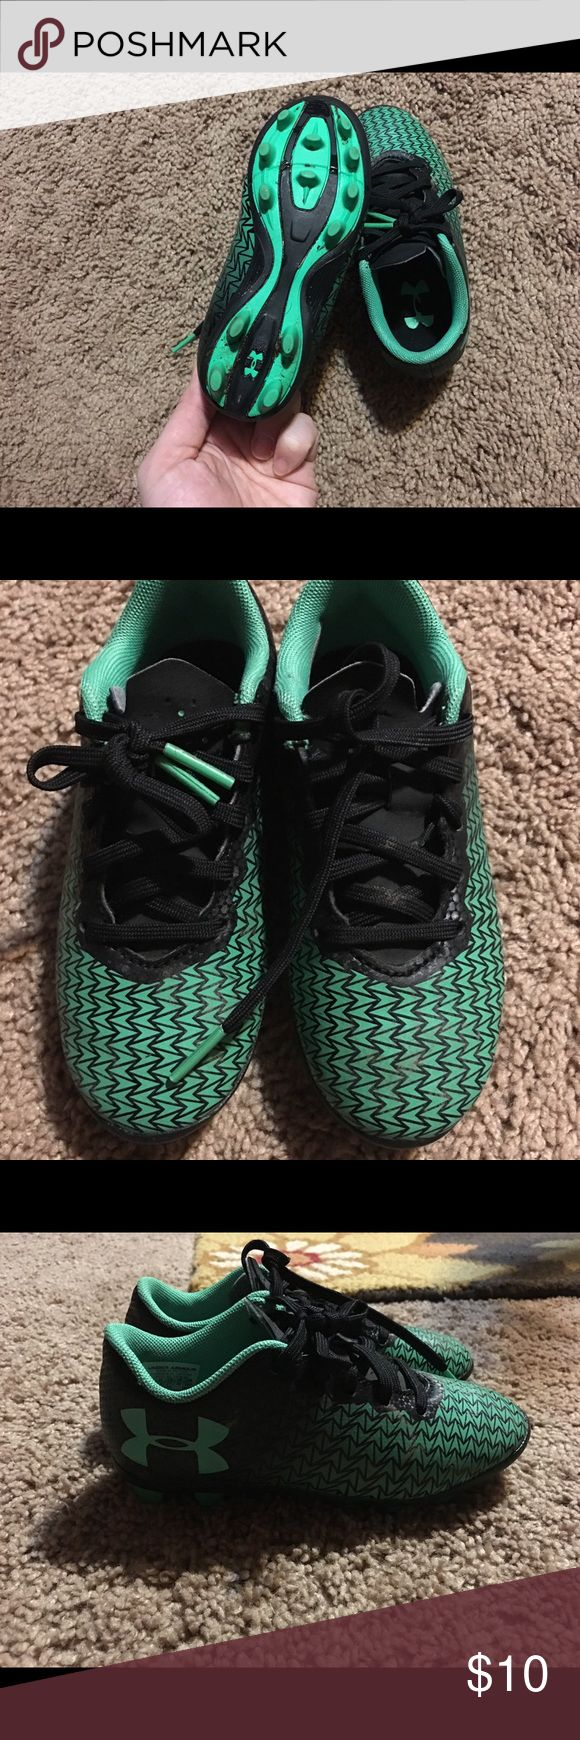 Boys' Under Armour Soccer Cleats Toddler size 10. USED condition. Worn for one season! Under Armour Shoes